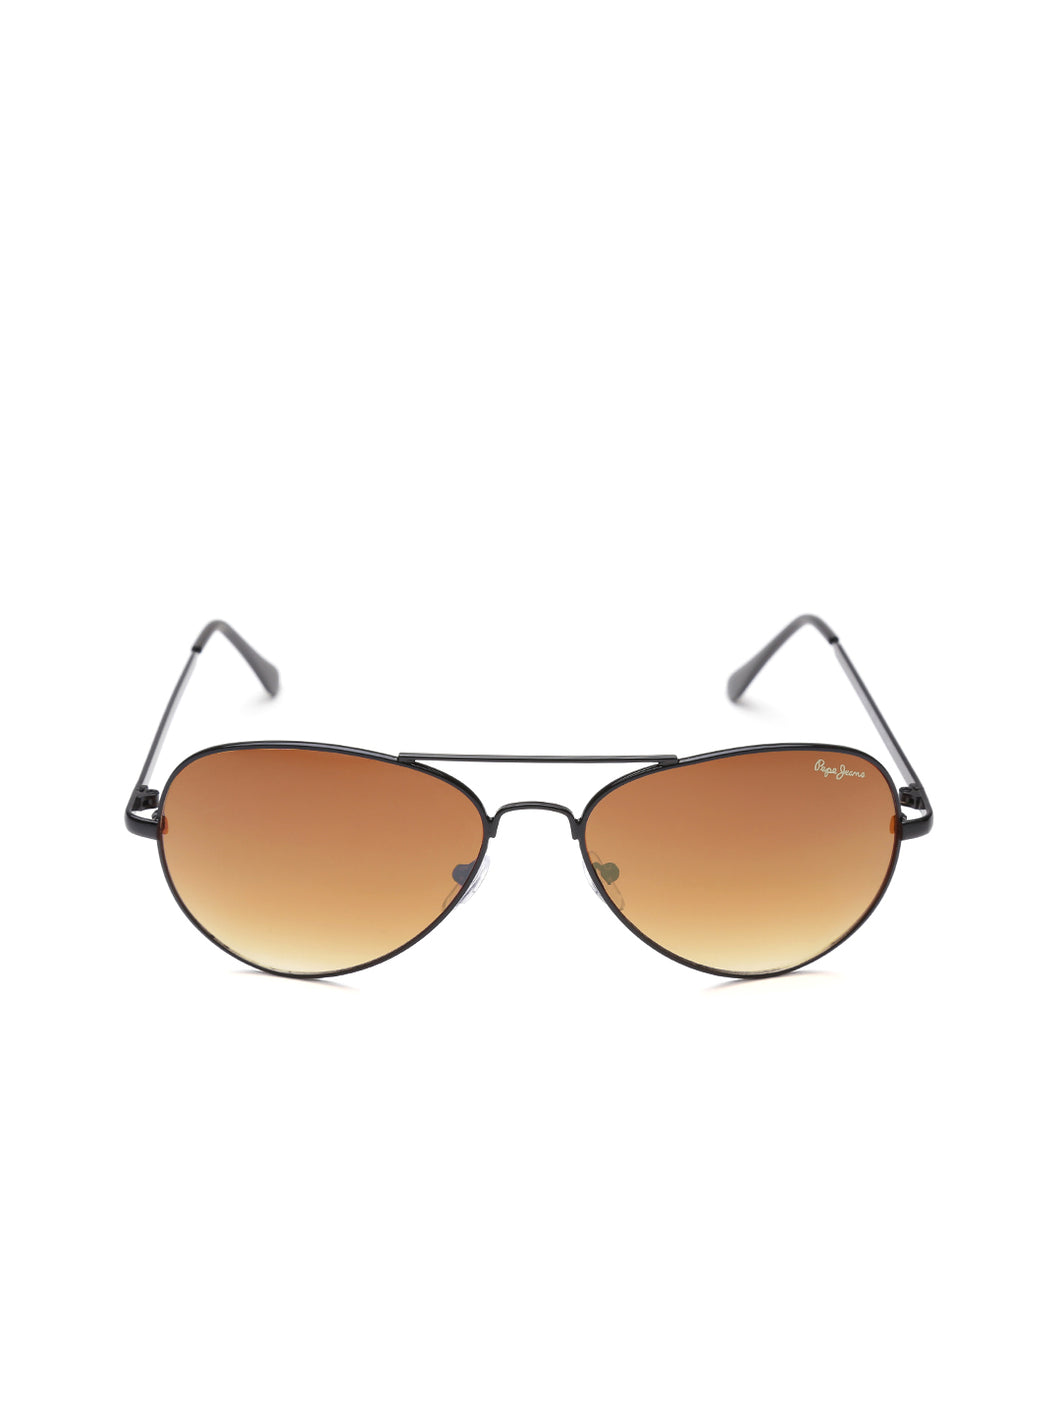 Unisex Aviator Sunglasses PJ5141